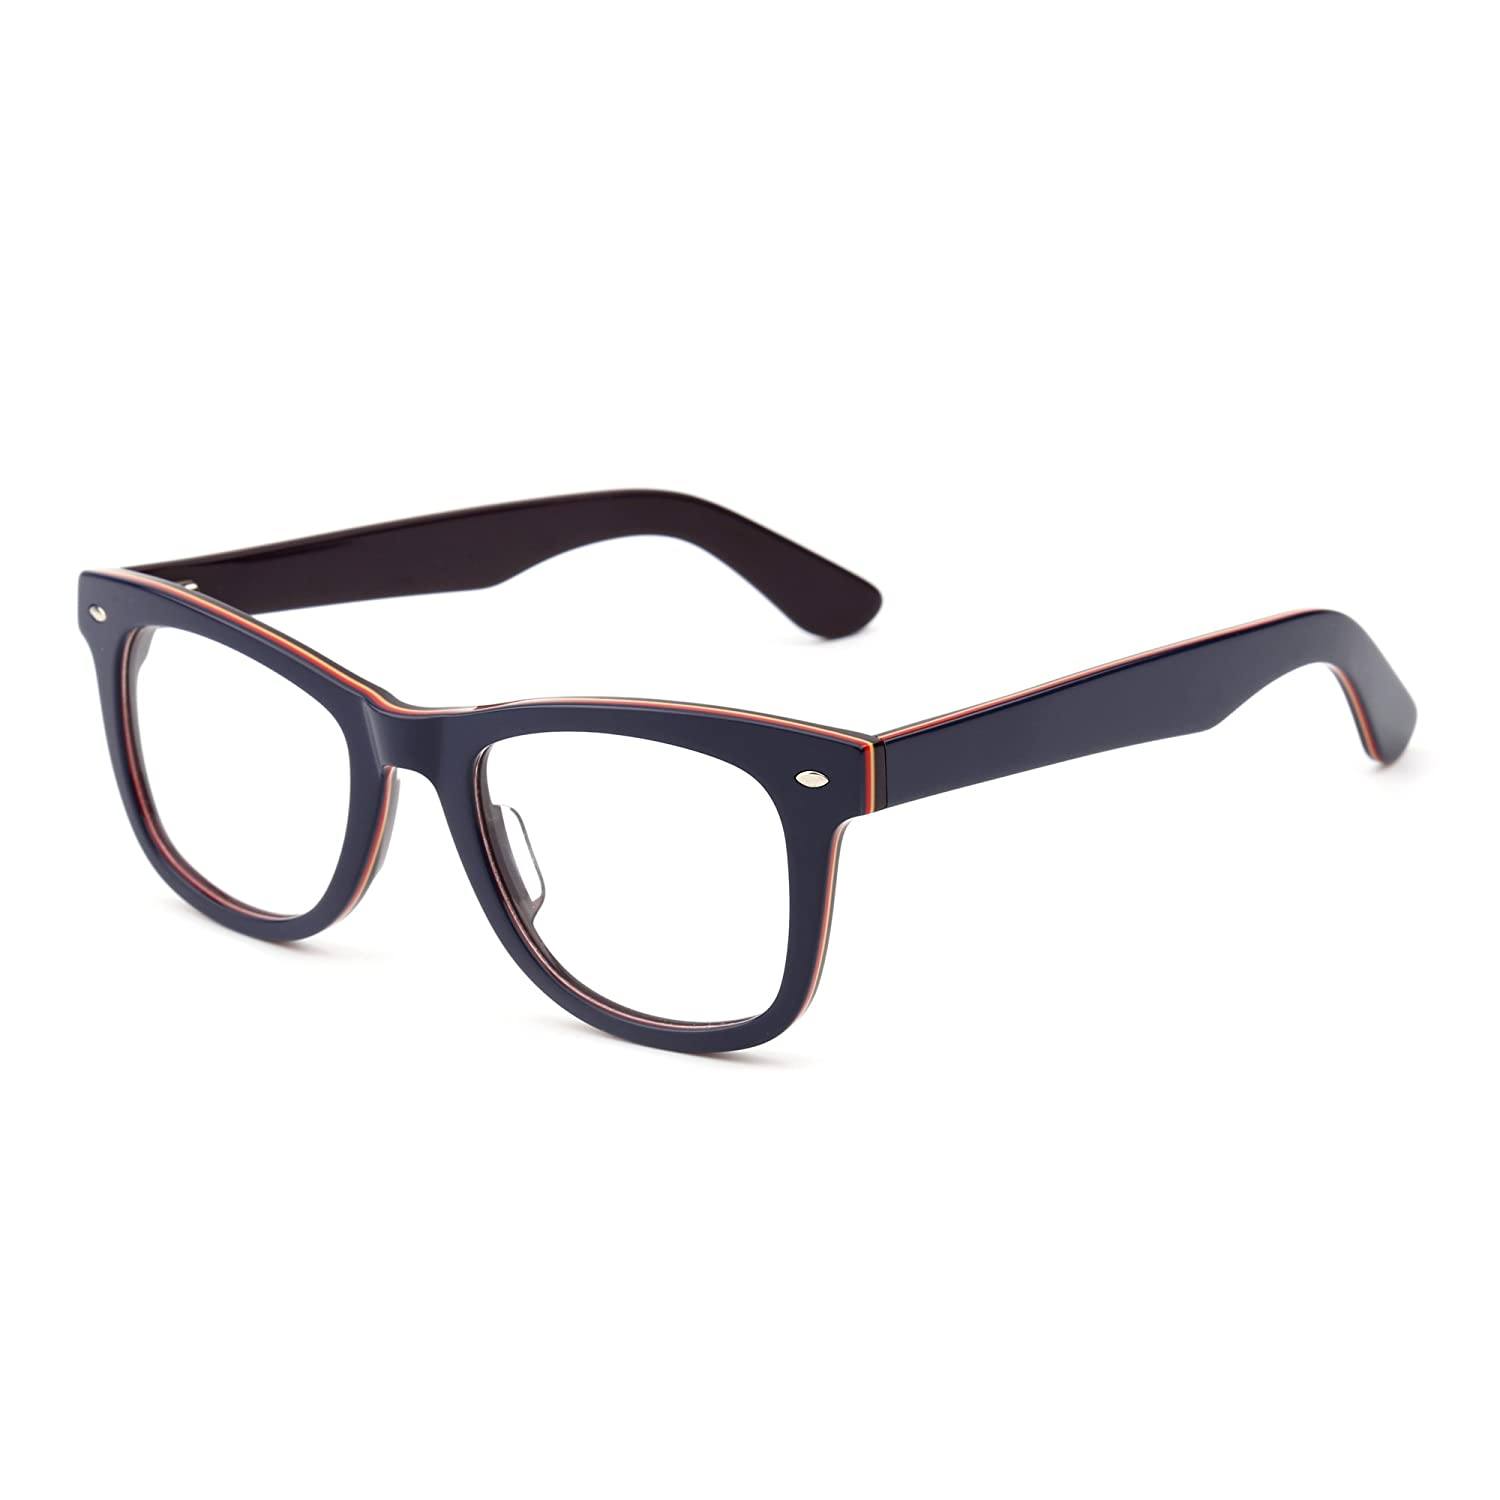 be94a86392c6 Amazon.com  Classic RX Glasses Frame Spring Hinge Clear Lens Square Eyeglasses  Men Women (Black Red Clear)  Clothing